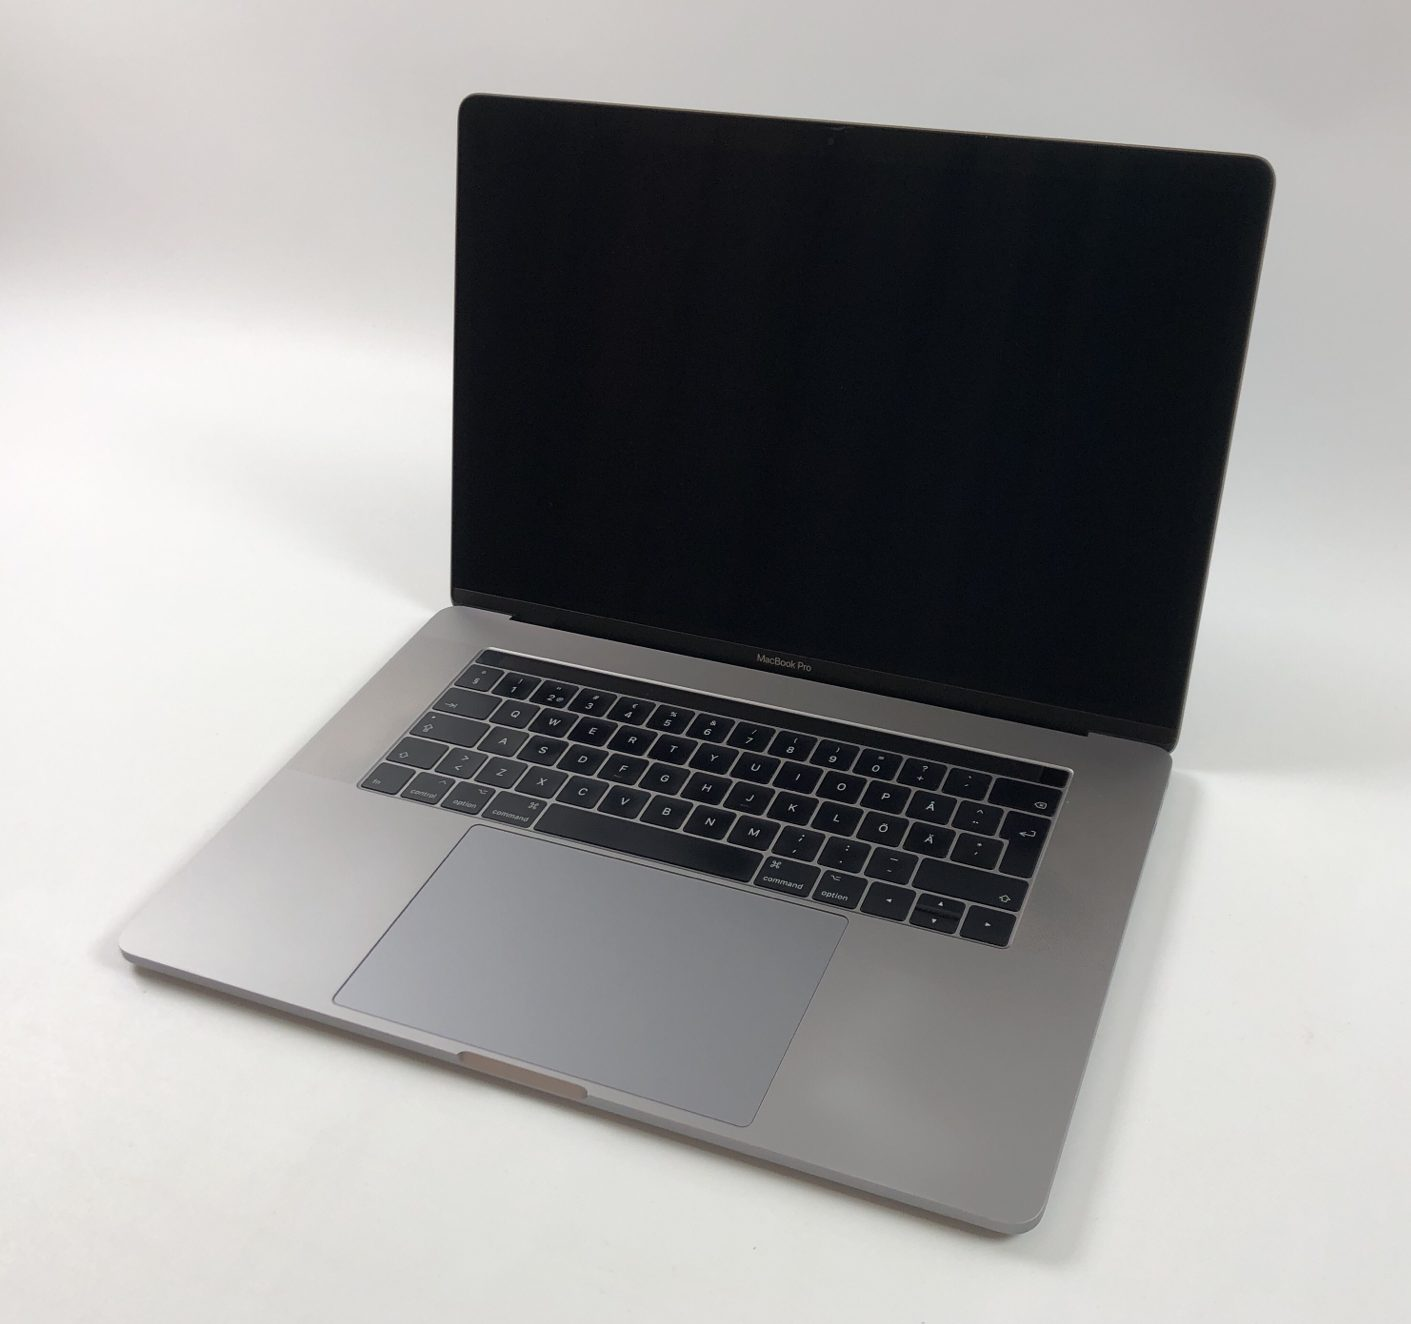 "MacBook Pro 15"" Touch Bar Mid 2017 (Intel Quad-Core i7 2.9 GHz 16 GB RAM 512 GB SSD), Space Gray, Intel Quad-Core i7 2.9 GHz, 16 GB RAM, 512 GB SSD, Bild 1"